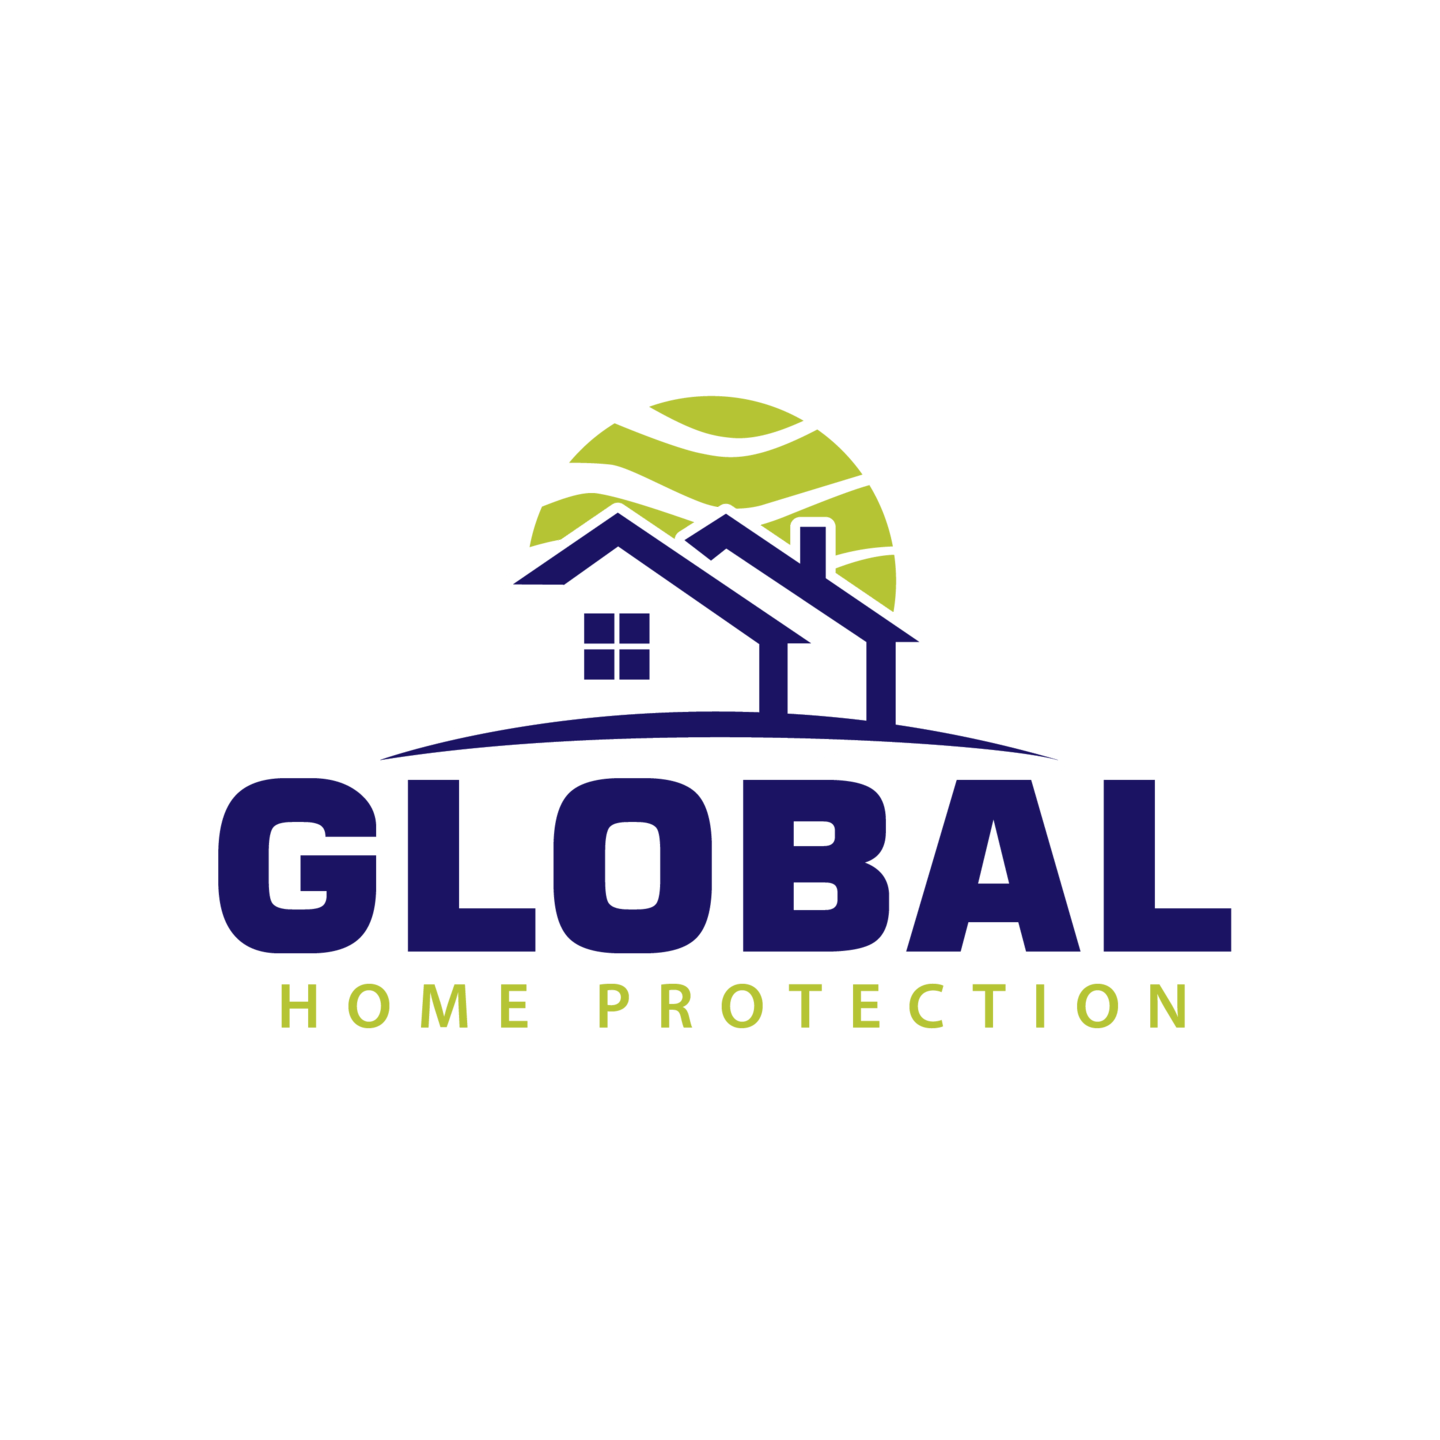 Global Home Protection Home Warranty